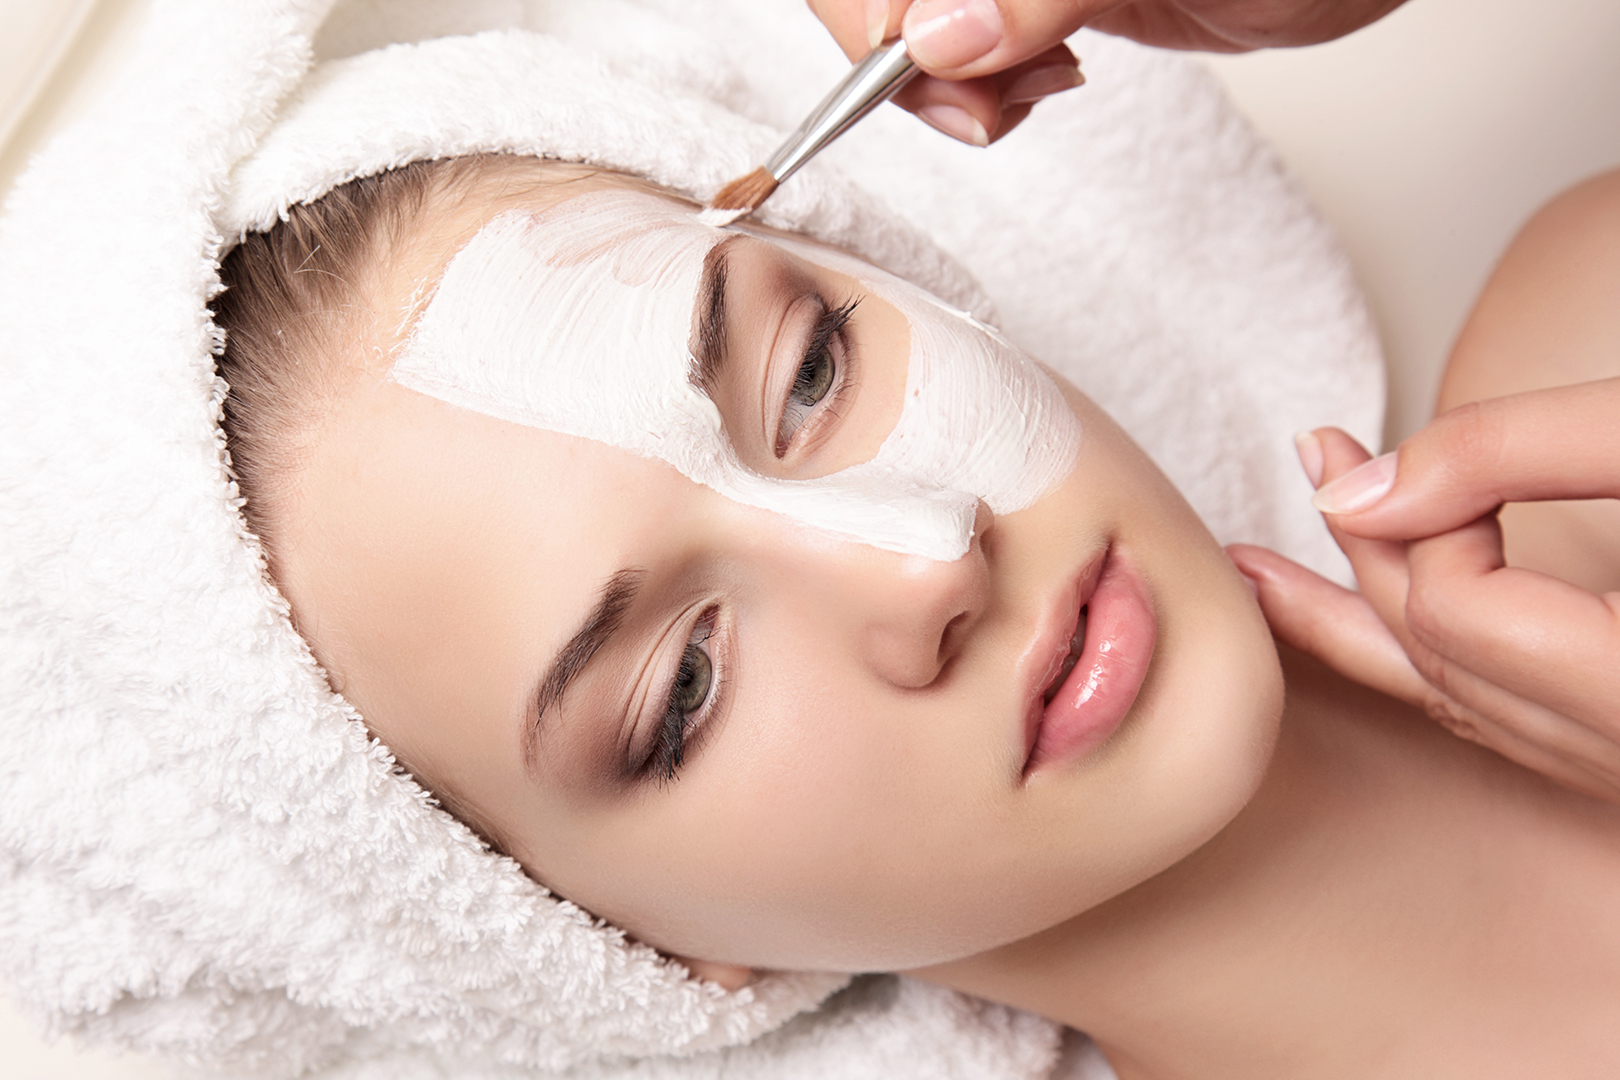 ULTRA BRIGHTENING LUMINOSITY FACIAL - Suitable for: hyperpigmentation, melasma (hormonal pigmentation), uneven skin tone, sun damage, lack of radiance, blotchiness, age spots. Duration: 1 hourCost: $199Suggested treatment intervals: 4- 6weeklyDowntime: Possible mild peeling and or redness from several hours to a few days but nothing that will stop you from returning to your everyday activities.If your main concern is pigmentation or you just want a glowing, more radiant tone then this is the Skin Treatment for you! This Premium Facial begins with our relaxing signature deep cleanse. The hero Ultra Brightening Accelerator Mask containing a powerful blend of 11 active ingredients is then applied and layered on the skin. This multi-action treatment mask uses well know AHA's, BHA's as well as 8 skin brightening and lightening agents to work its magic. Whilst awaiting your new luminous complexion, relax and enjoy a décolletage and back massage. We will then finish off with our signature Mutli-Vitamin Infusion to hydrate and feed the skin with our brightening and hydrating serums.Suggested homecare products: Ultimate Brightening Foaming Cleanser, Ultimate Brightening Serum, Ultimate Brightening Moisturiser Cream.